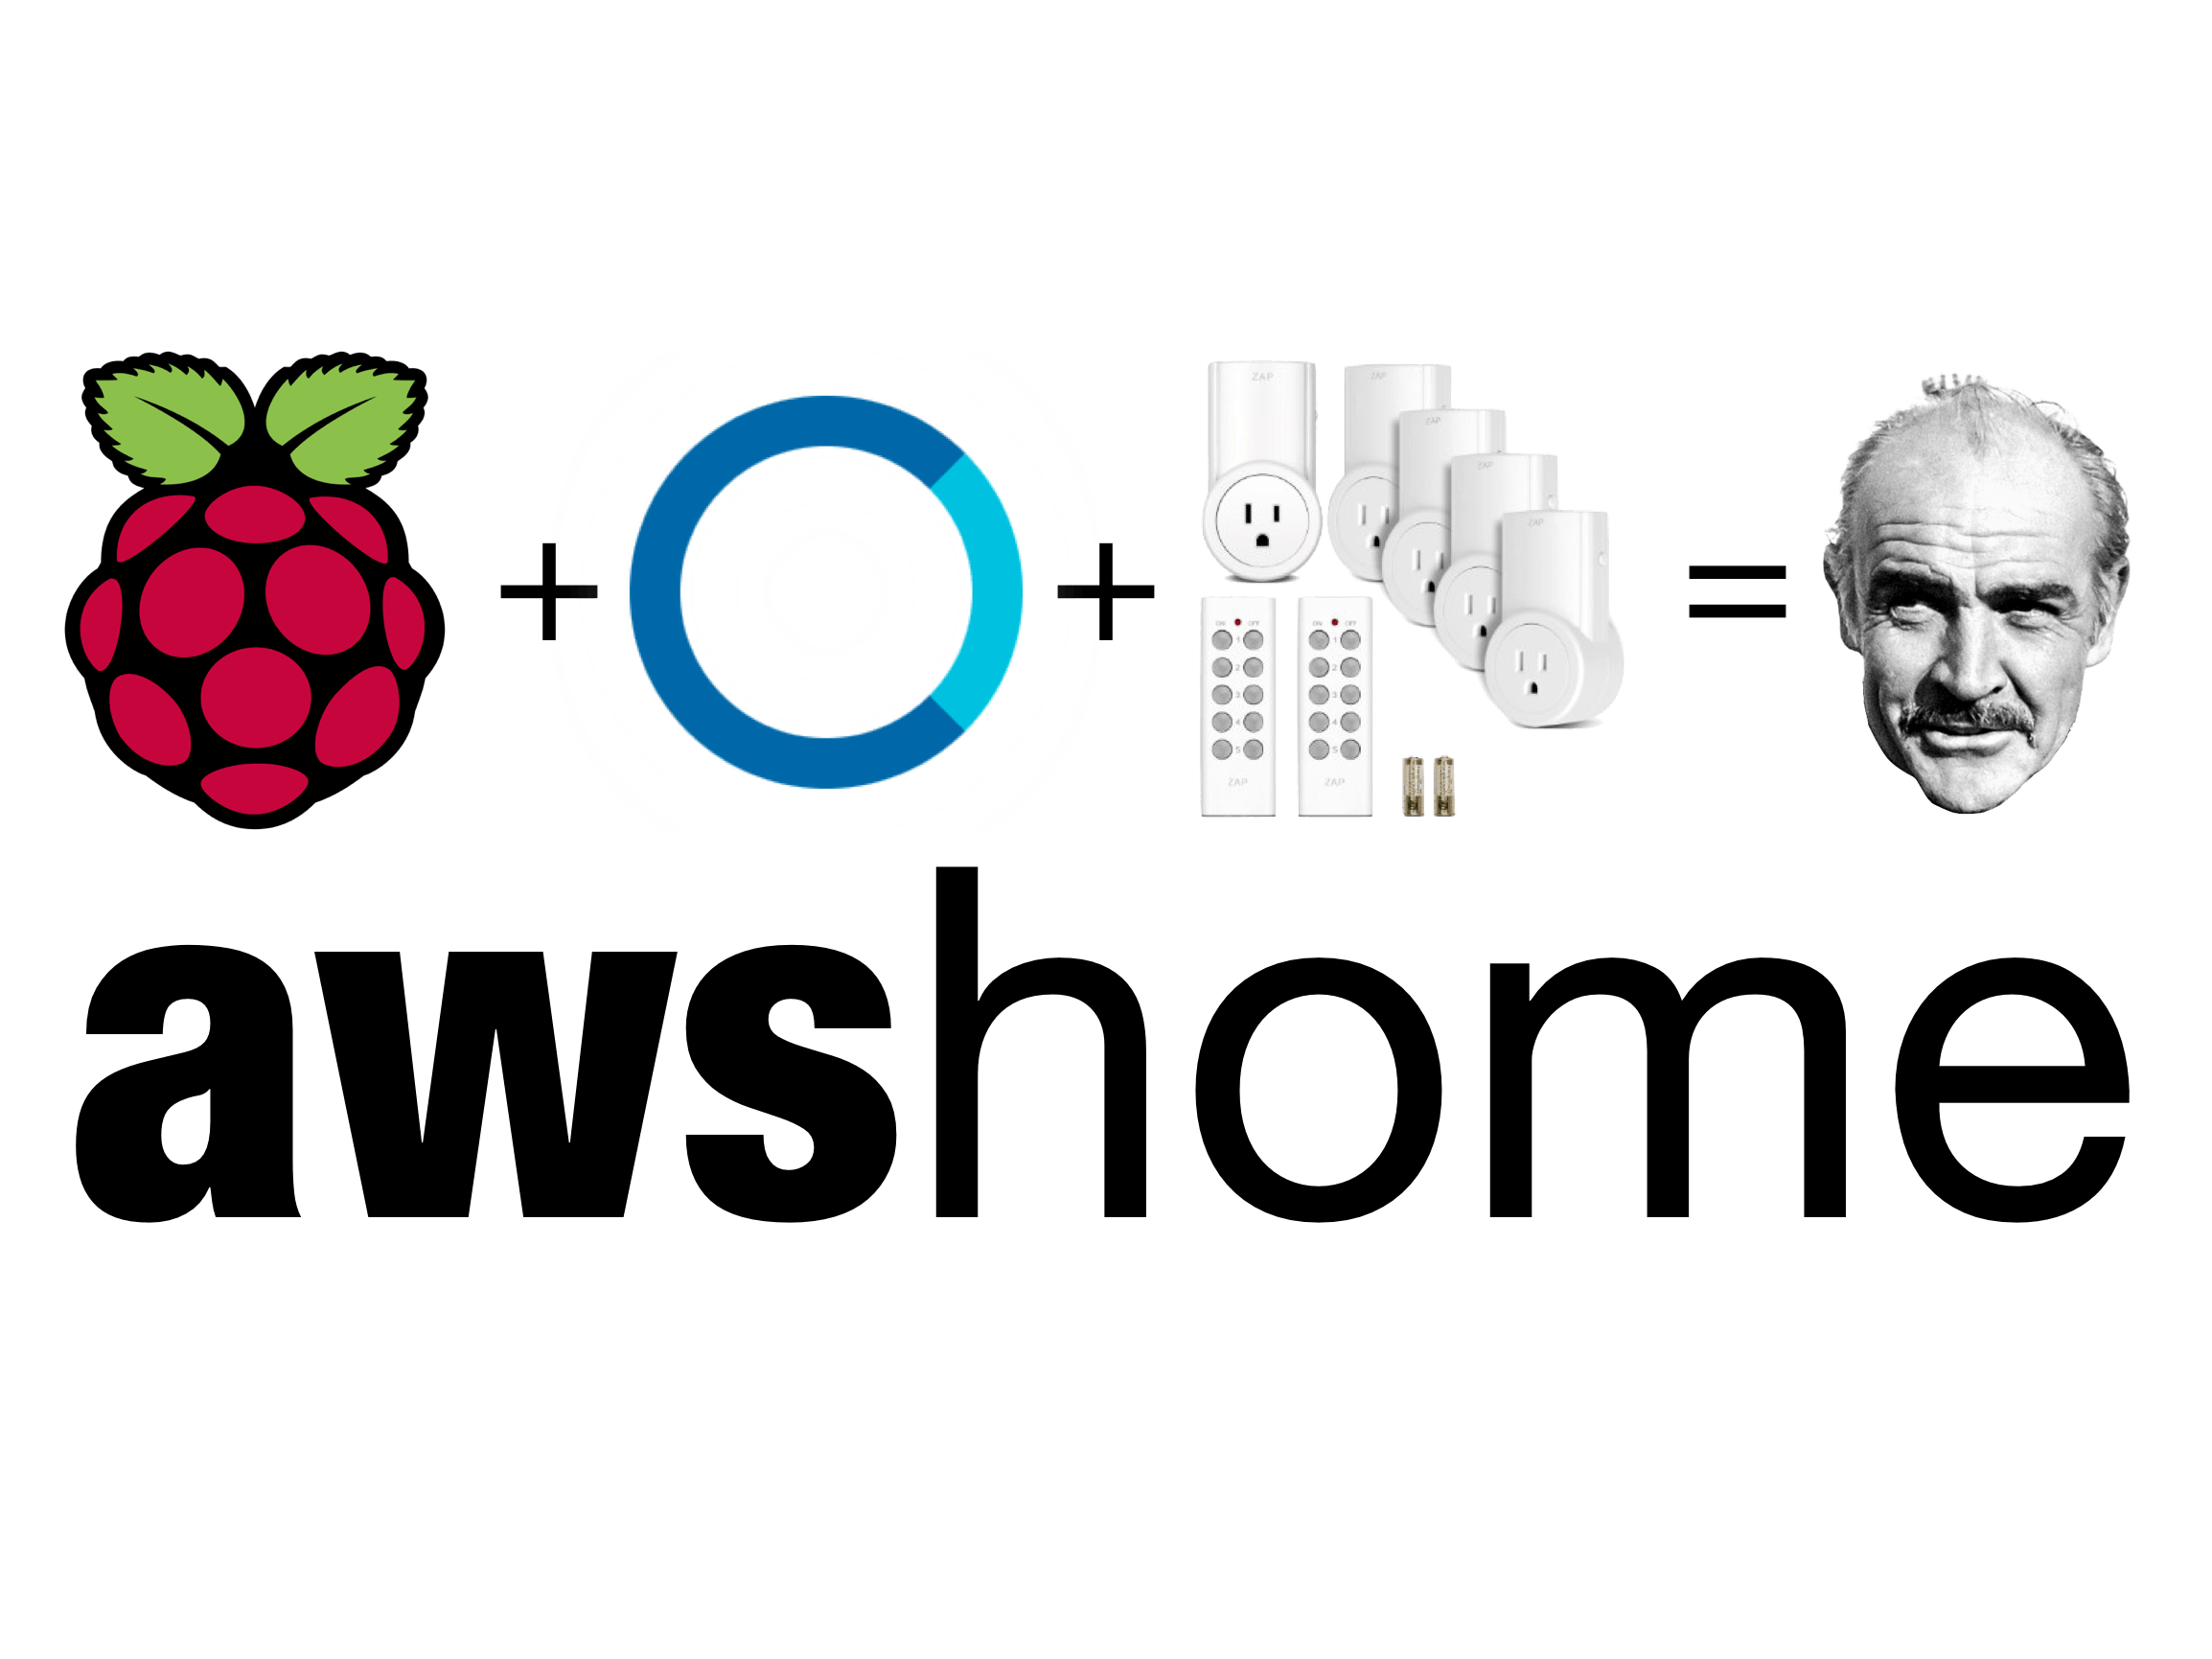 AWShome - Home automation using RPi + Alexa + IoT